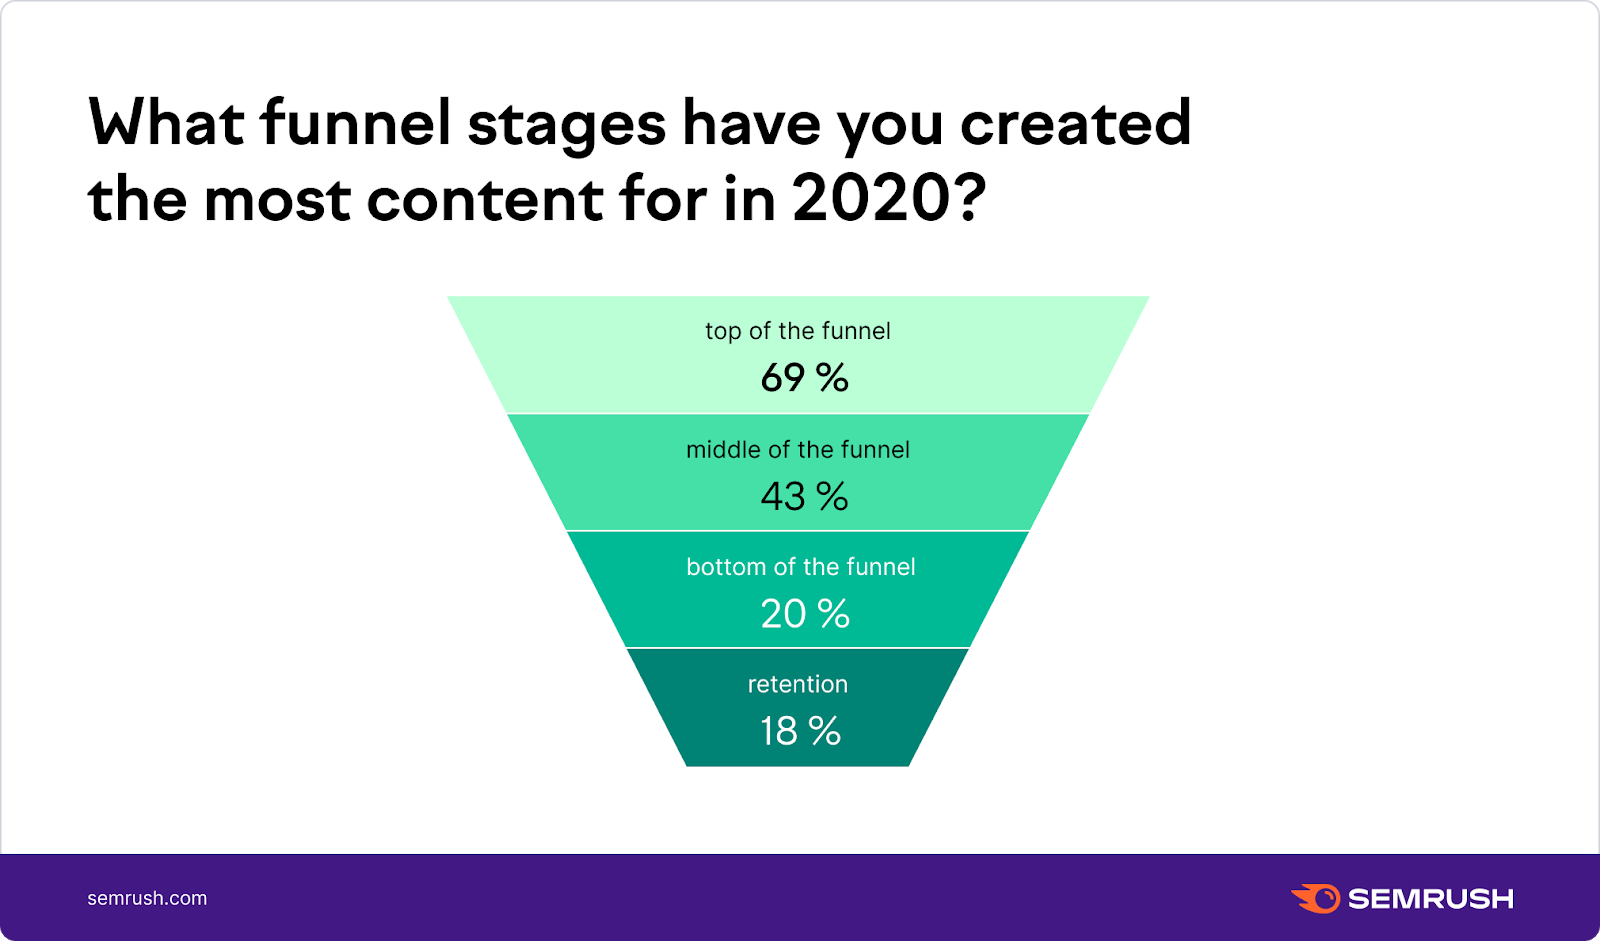 Which funnel stages have you created most content for?